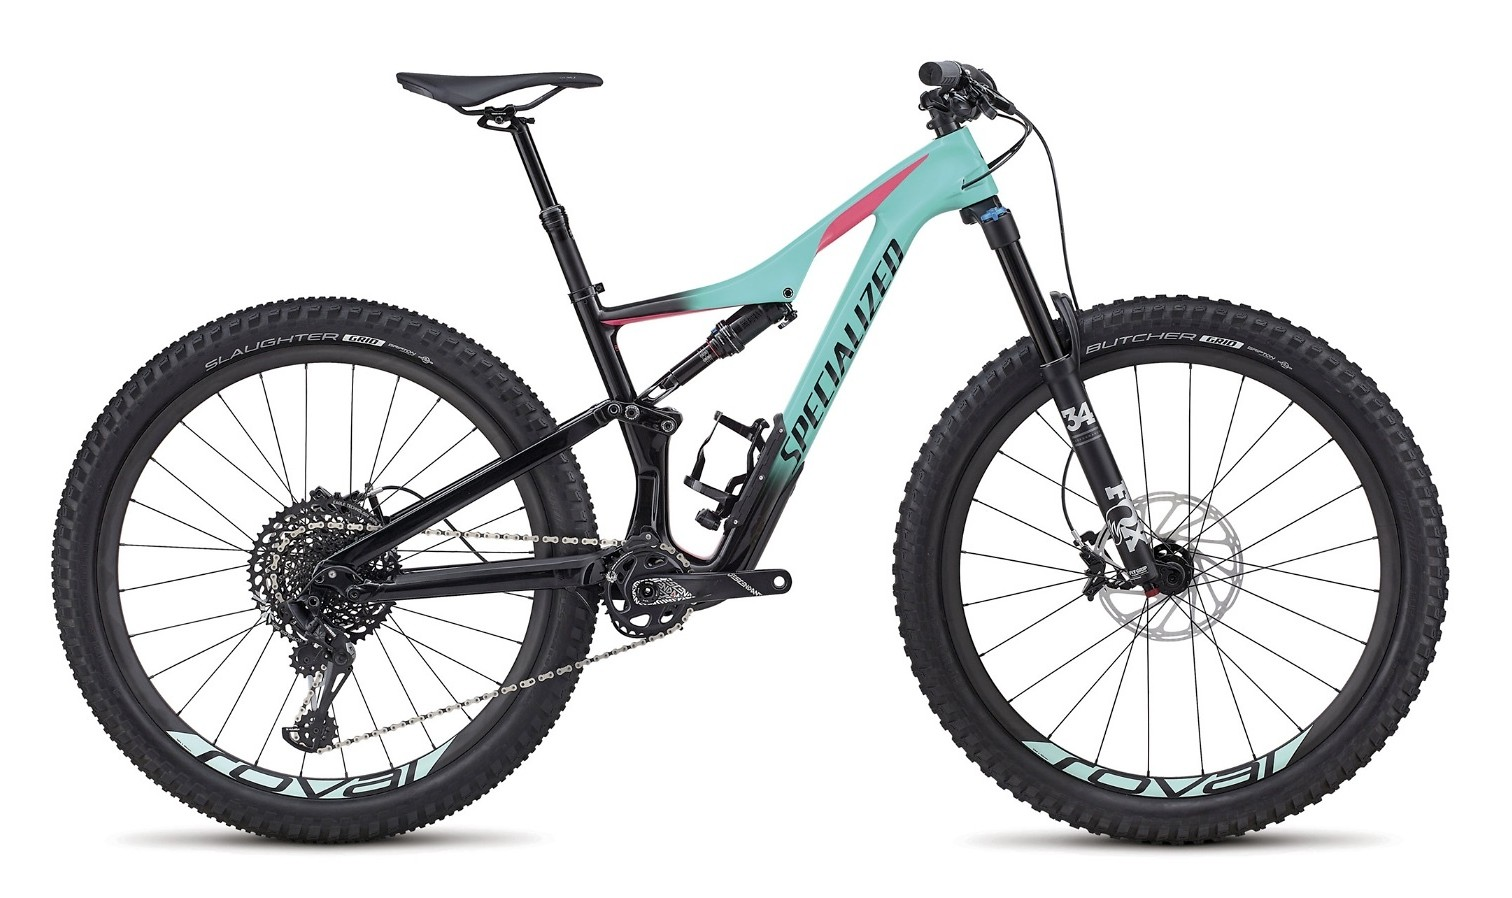 2018_Specialized_Rhyme_Expert_Carbon_27.5/6Fattie